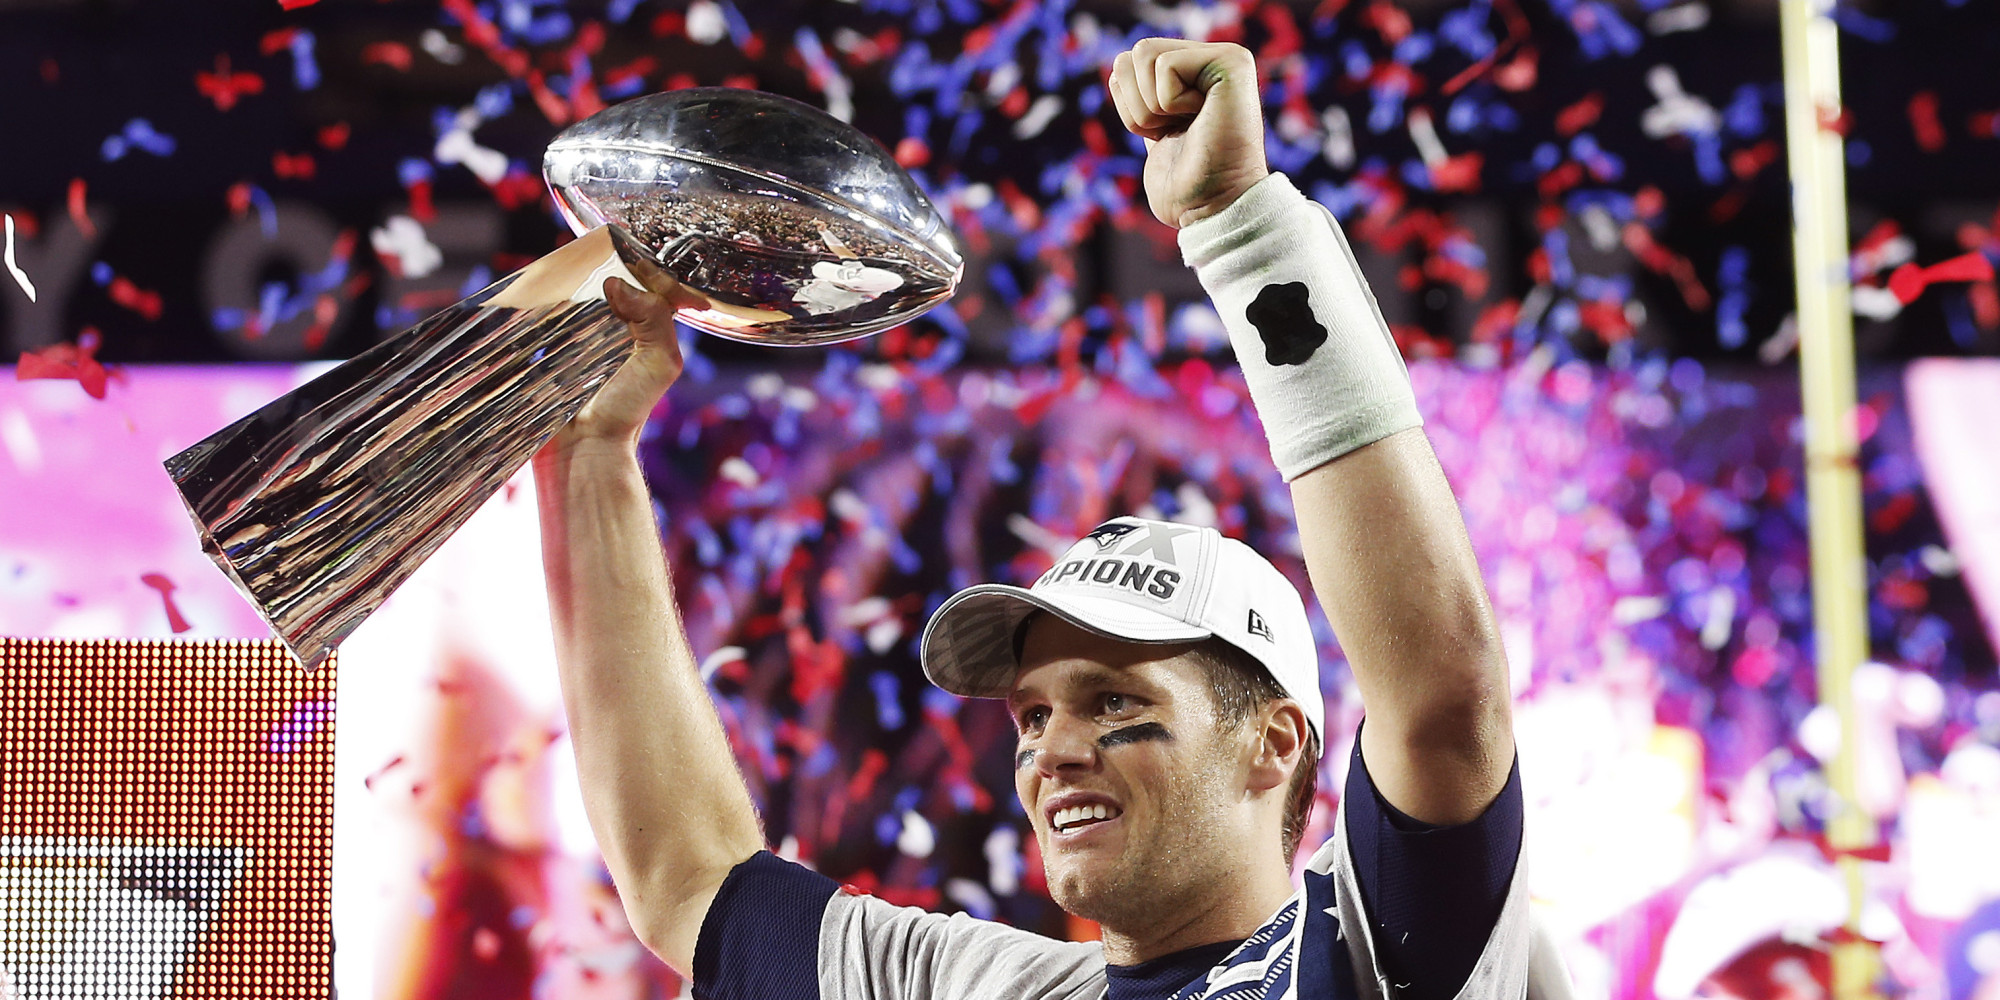 Patriots Wallpaper Hd Tom Brady Wallpapers Pictures Images